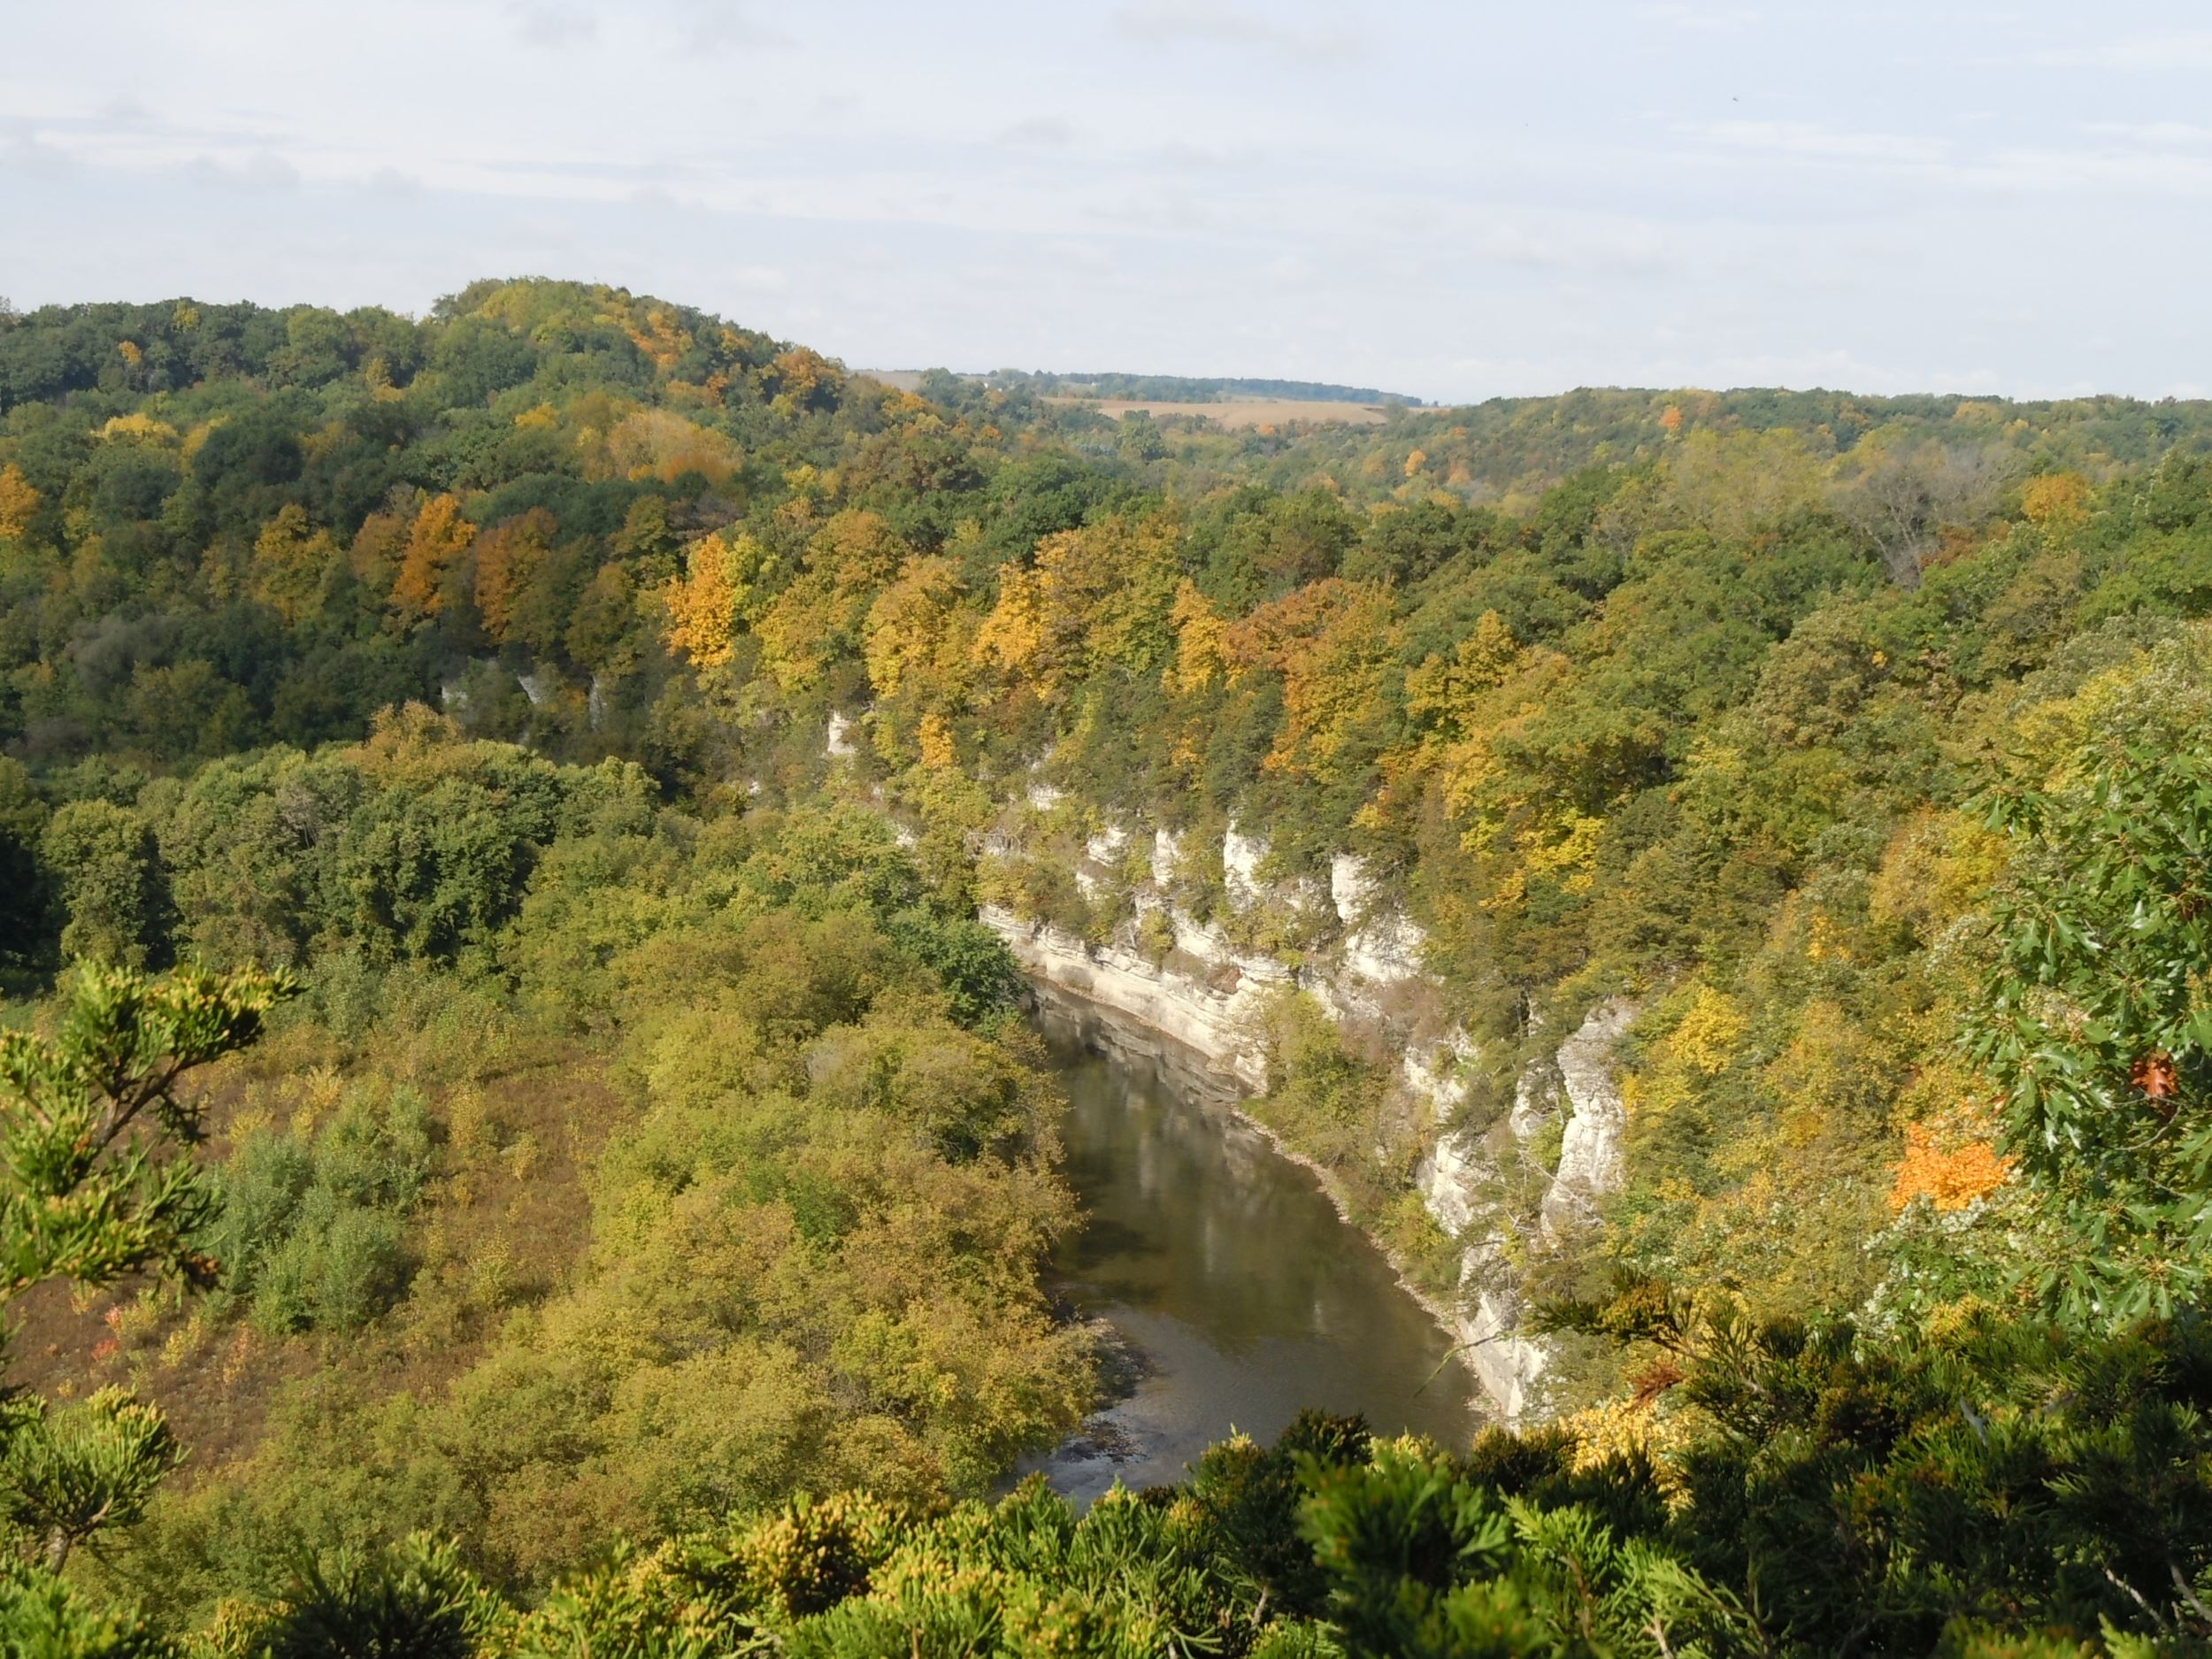 Chimney Rocks conservation easement protects viewshed along Upper Iowa River